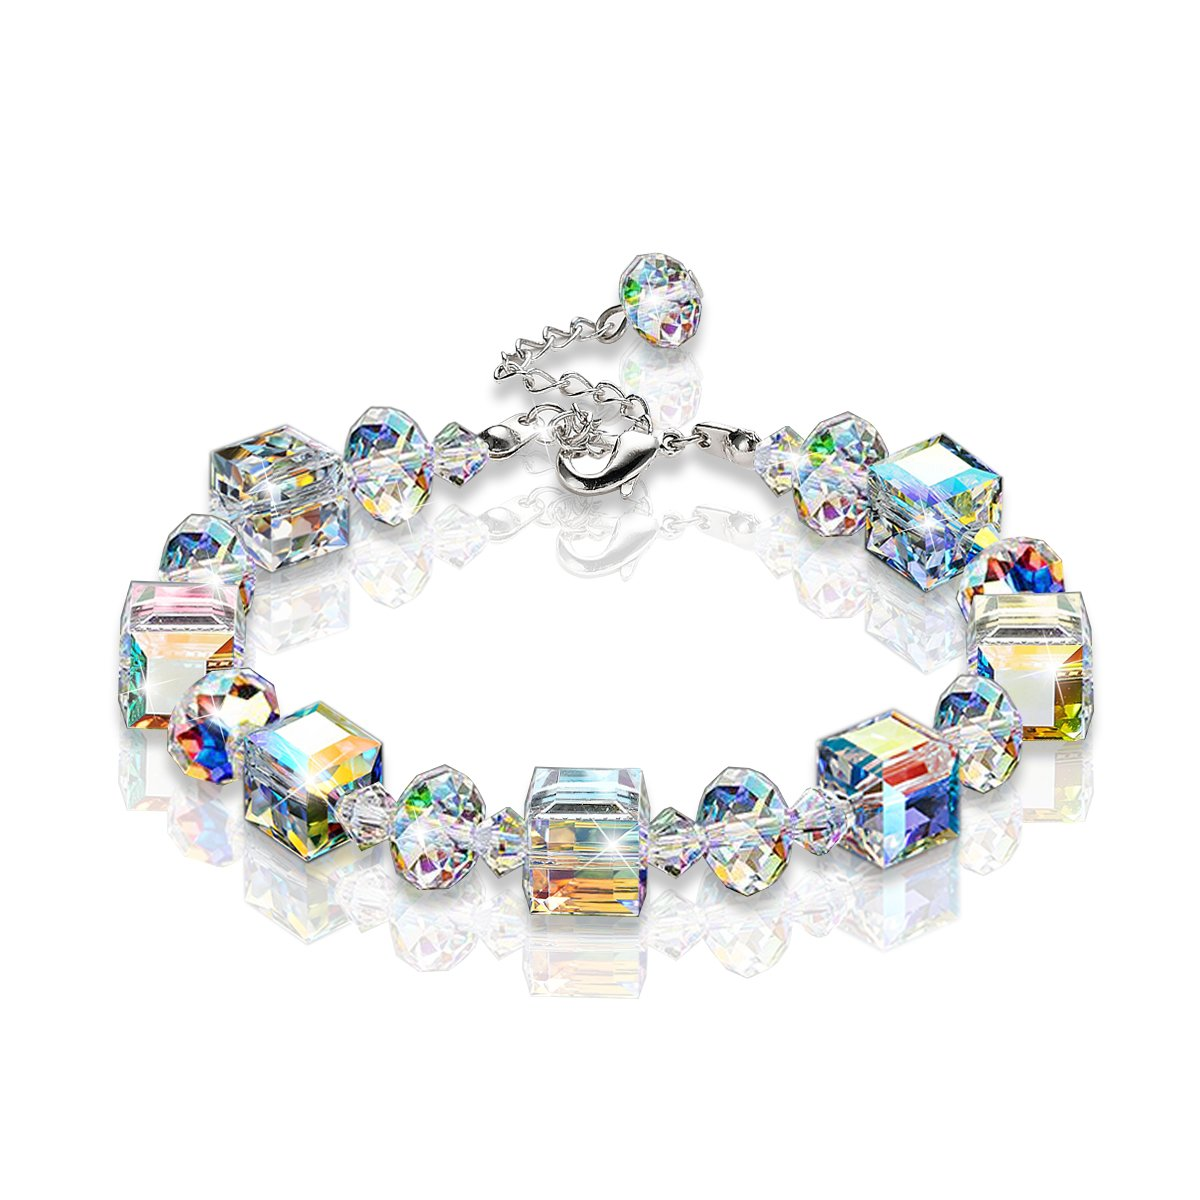 "KesaPlan Bracelet ""A Little Romance"" Adjustable 7'' - 9'' Crystal Stretch Bracelet Made with Swarovski Crystal"